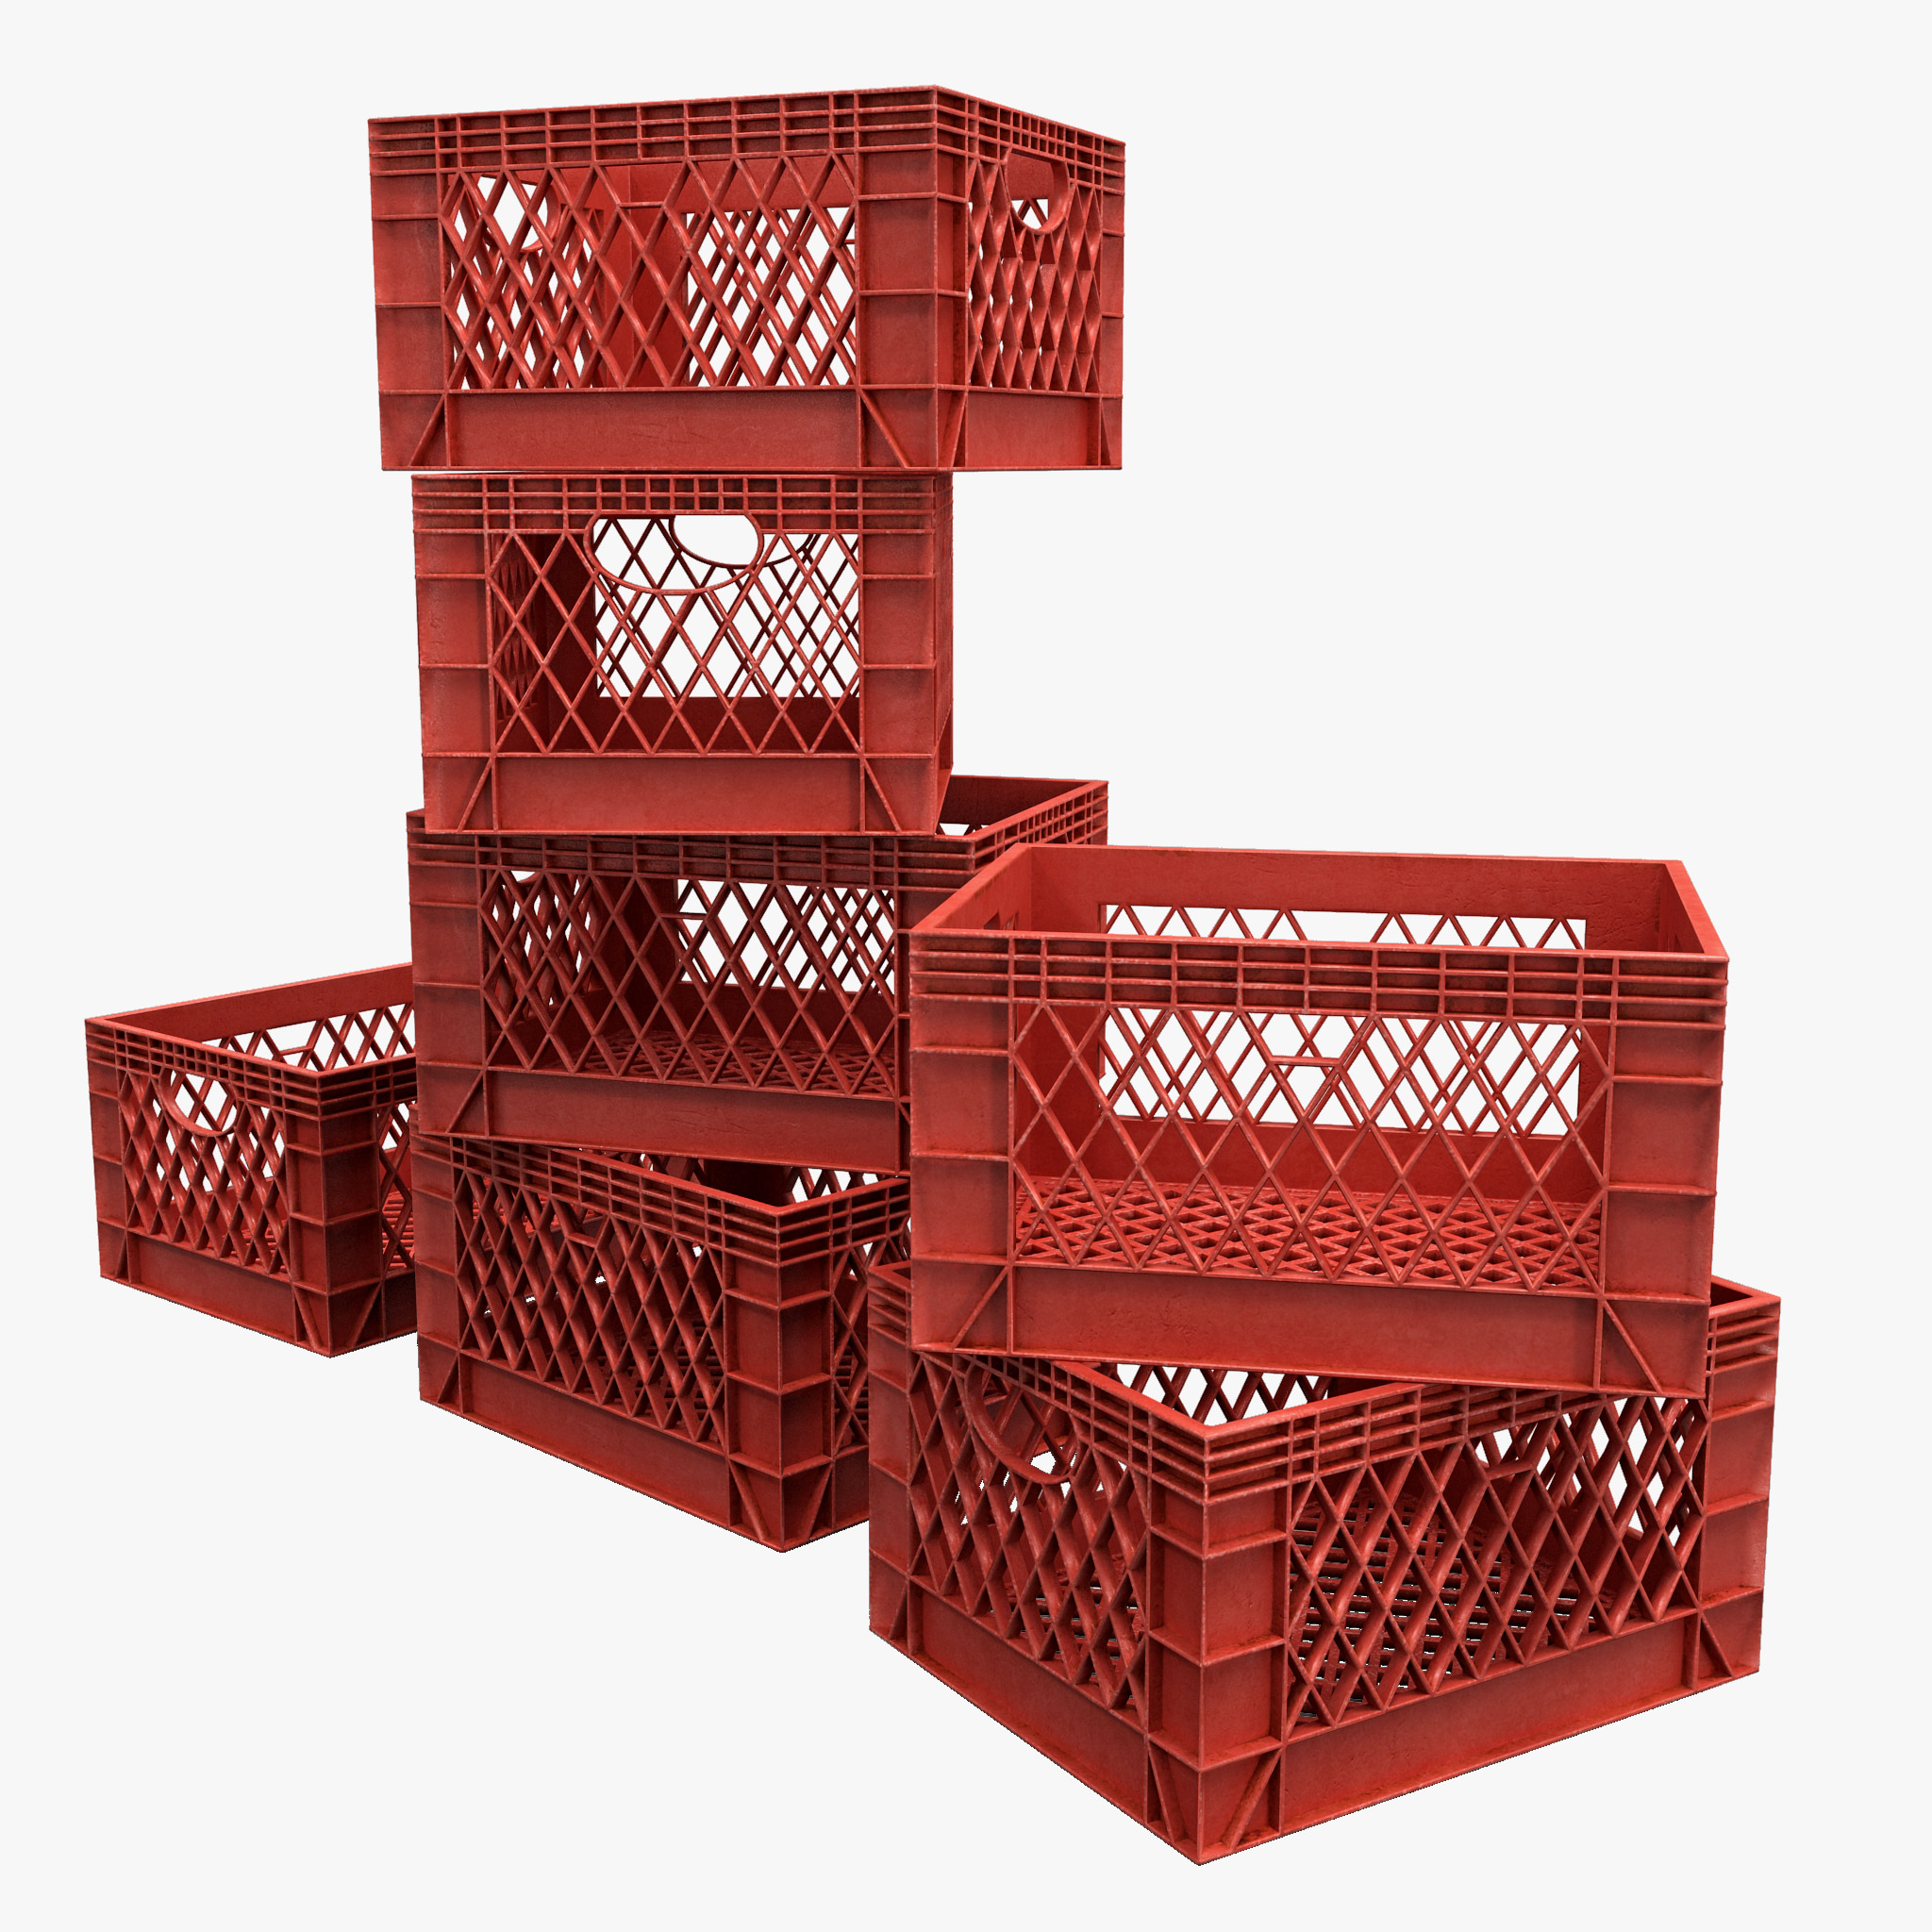 Stacked_Milk_Crates___000.jpg